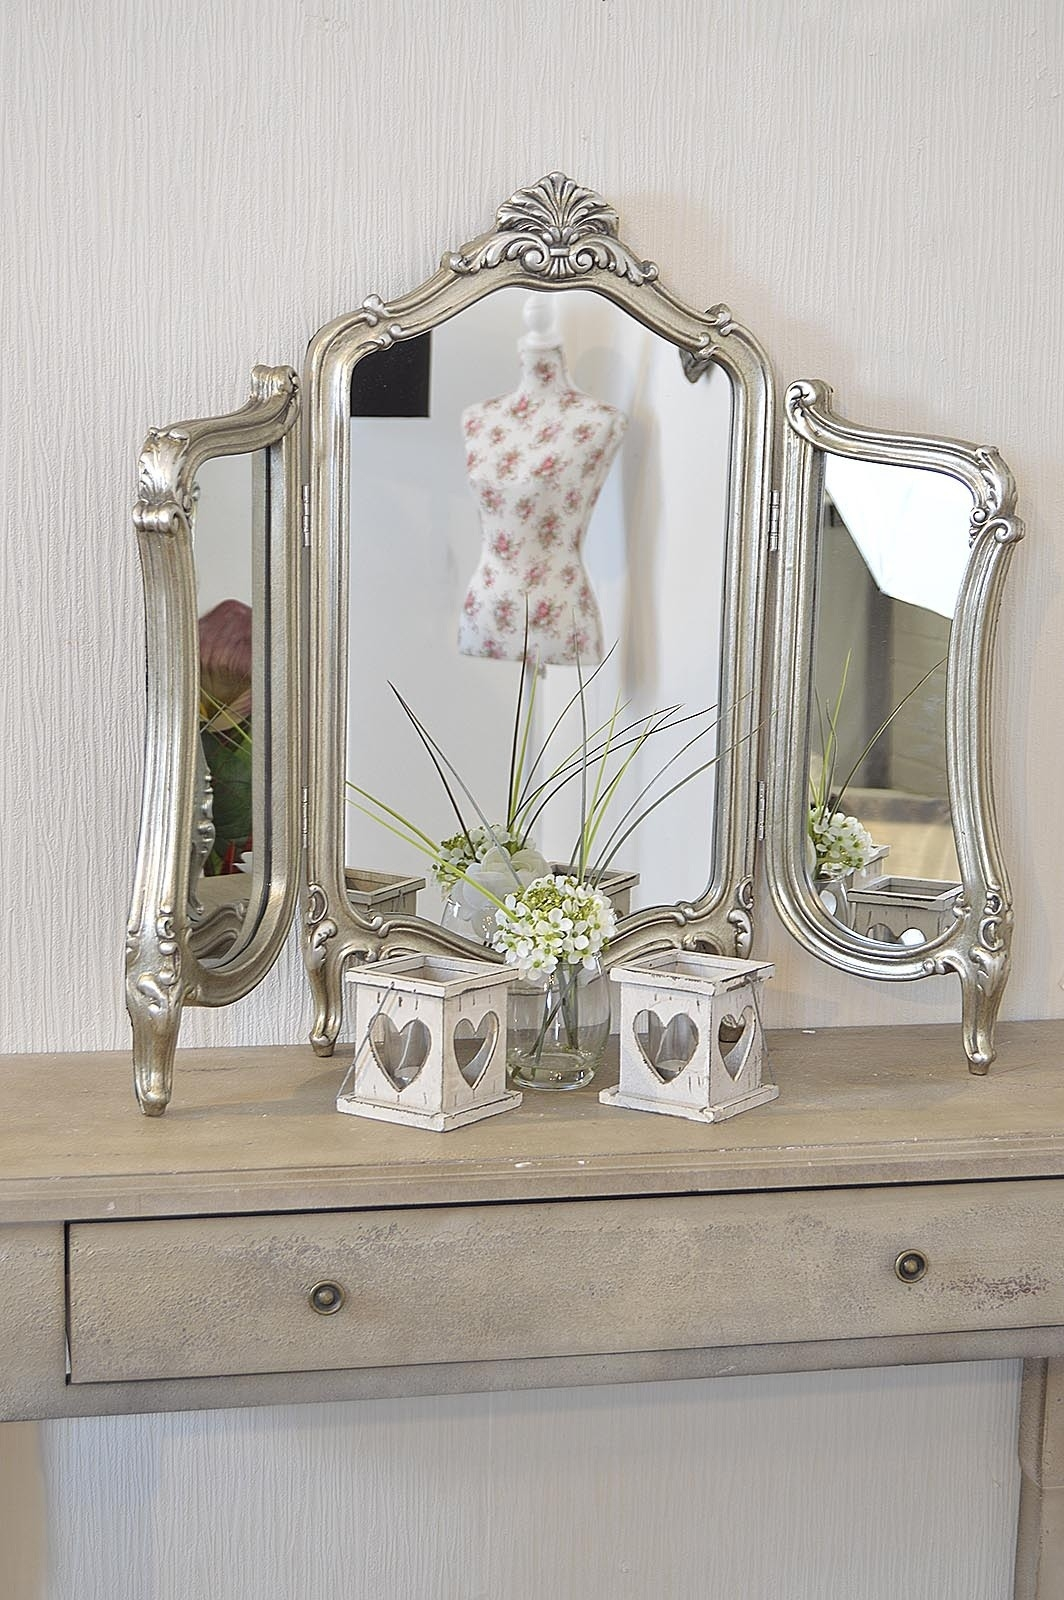 Dressing Table Mirror Stand Image Gallery Dirdoo Inside Mirror On Stand For Dressing Table (Image 2 of 15)